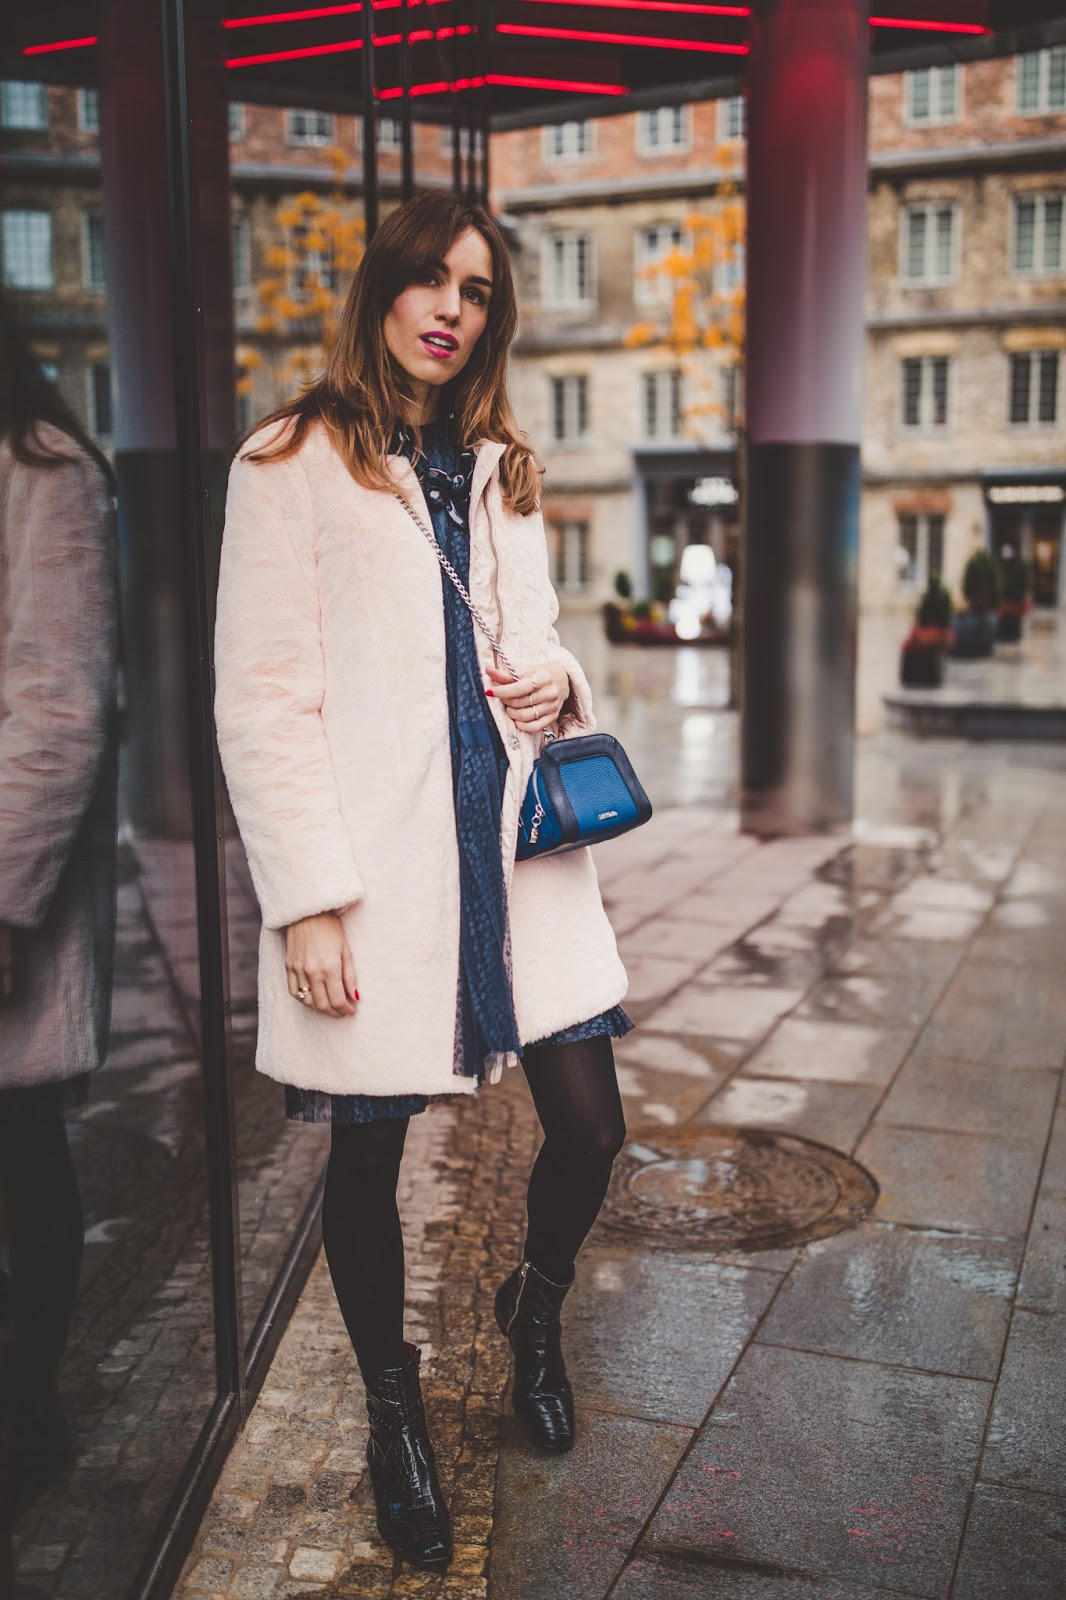 baby pink teddy coat outfit classy fall